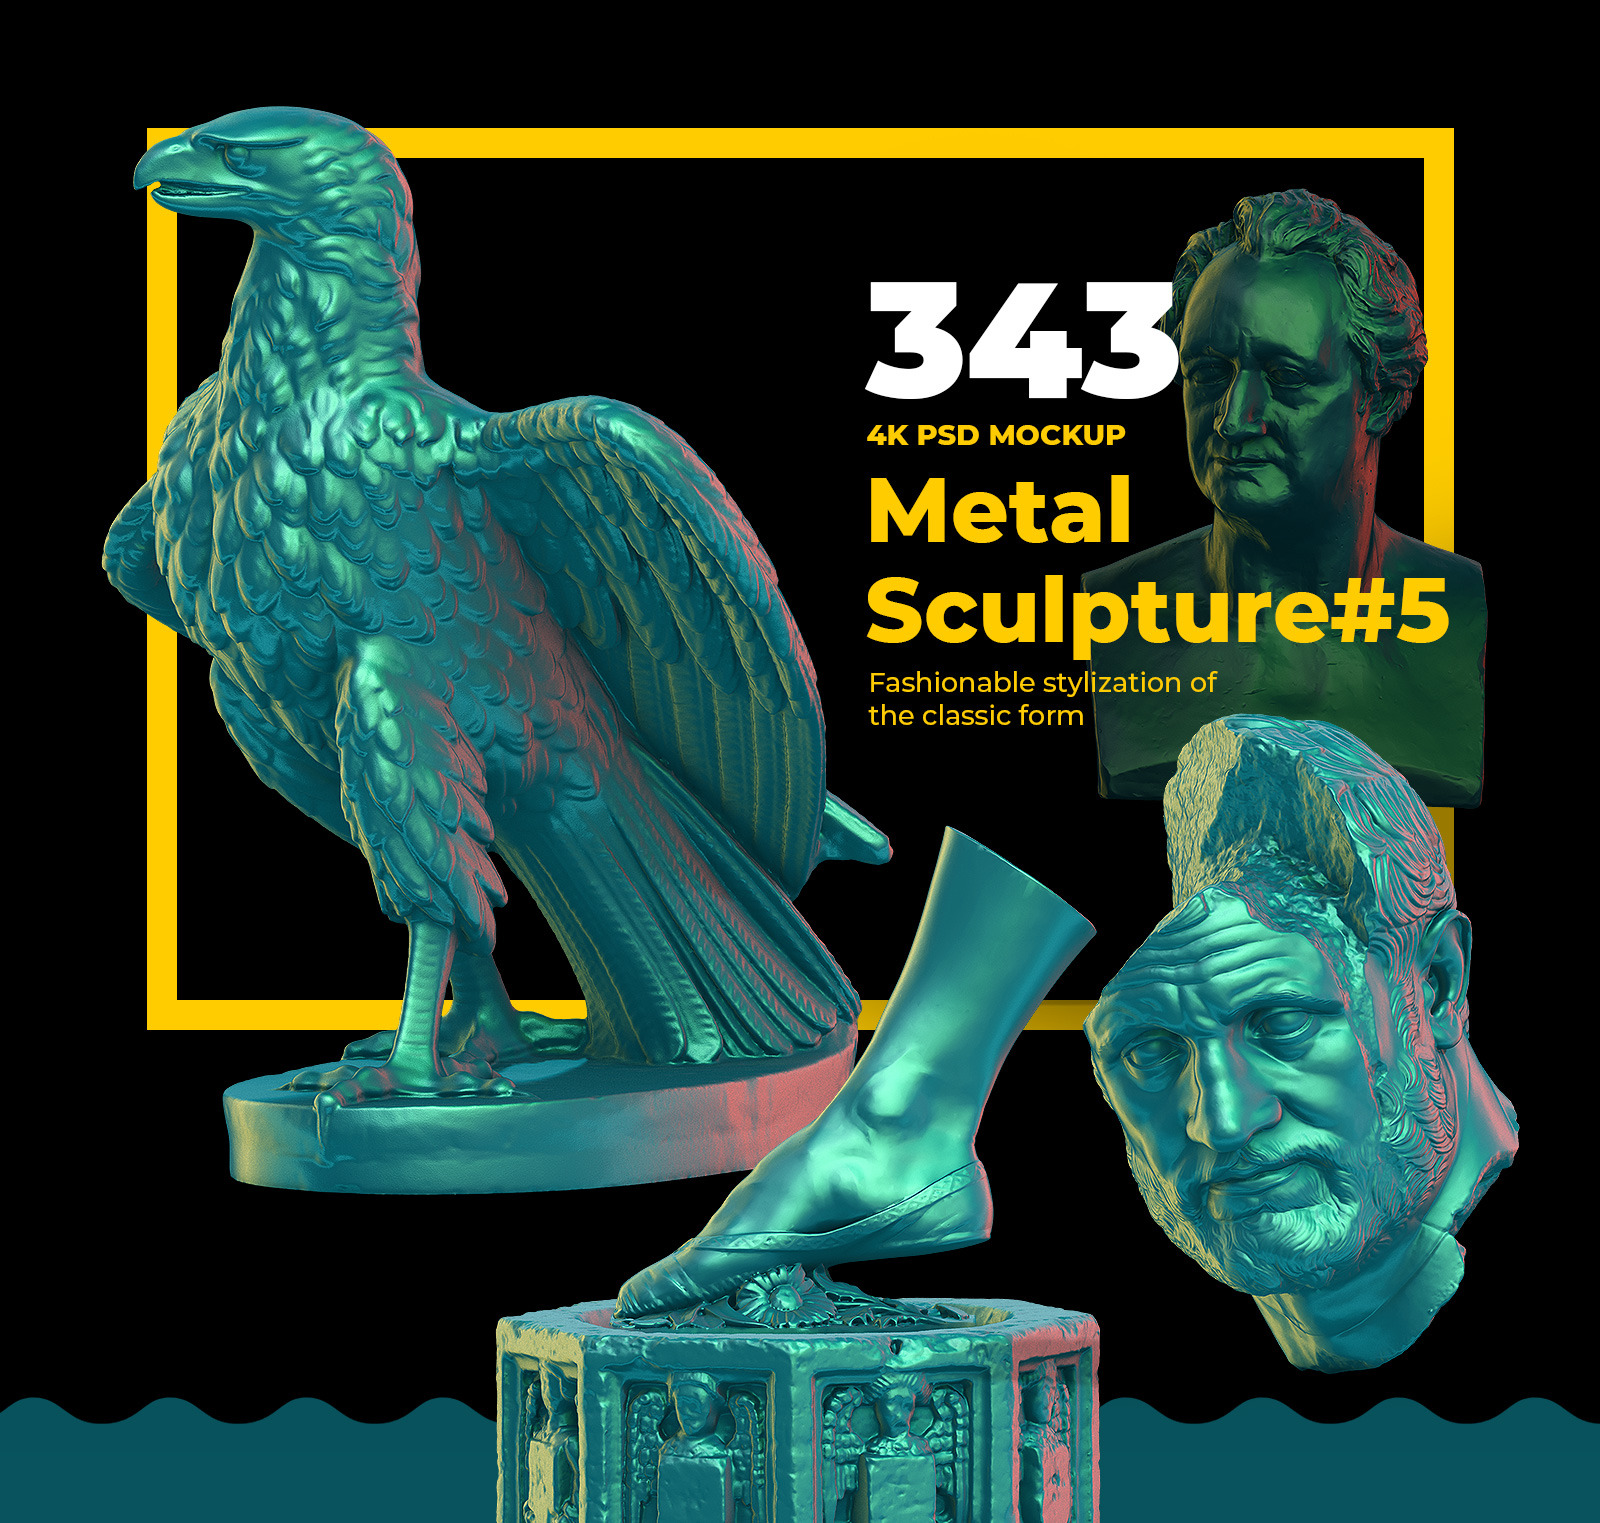 Collection of 343  Metal Sculpture #5